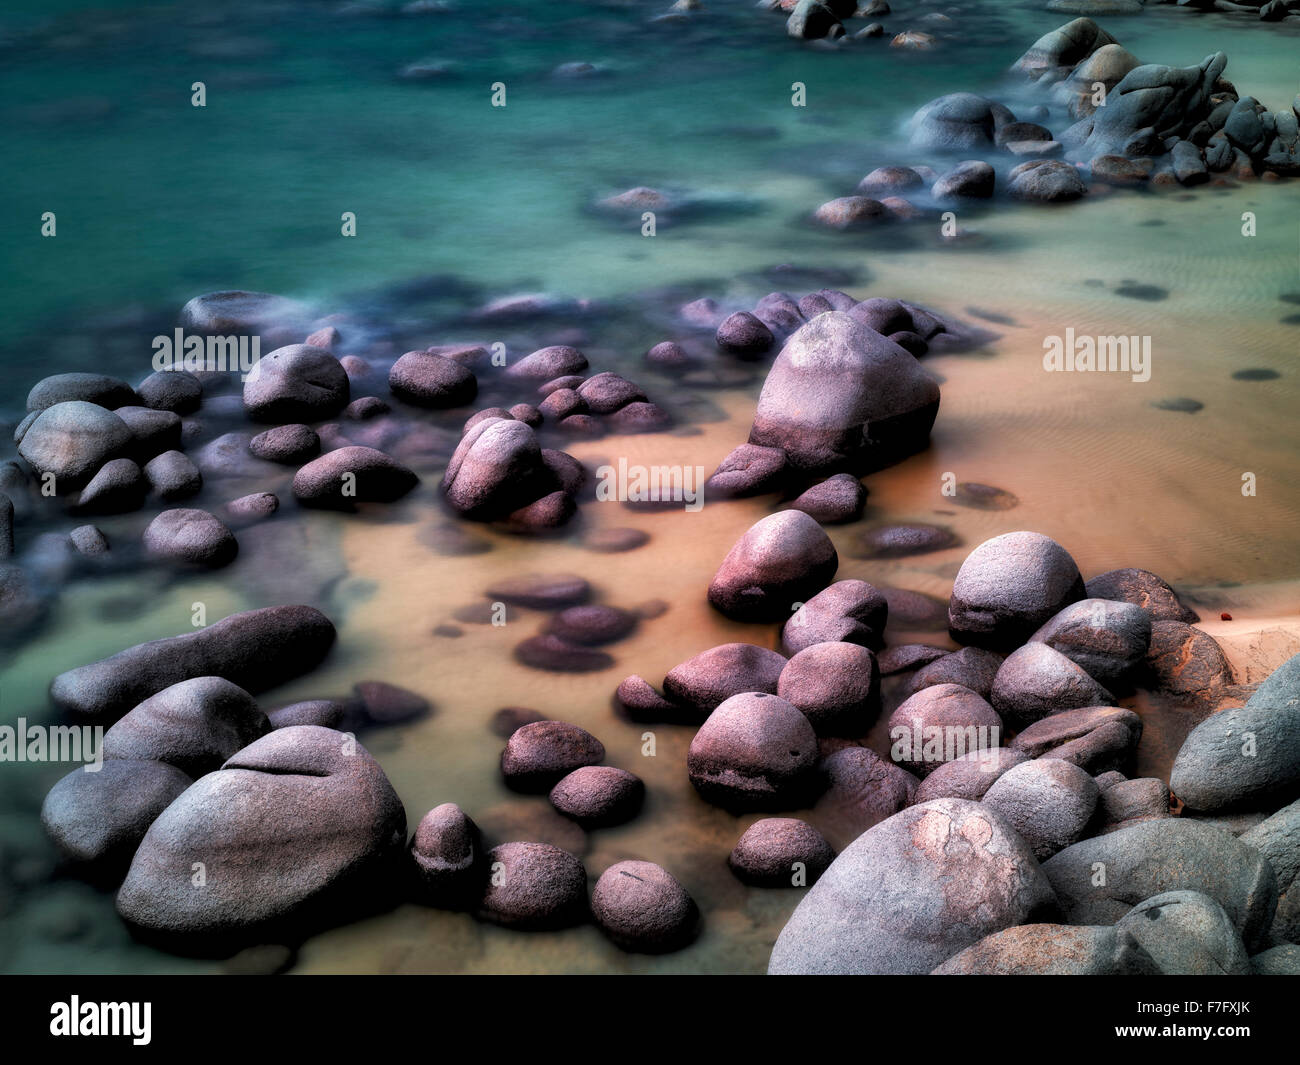 Boulders on beach shore of Lake Tahoe, Nevada - Stock Image